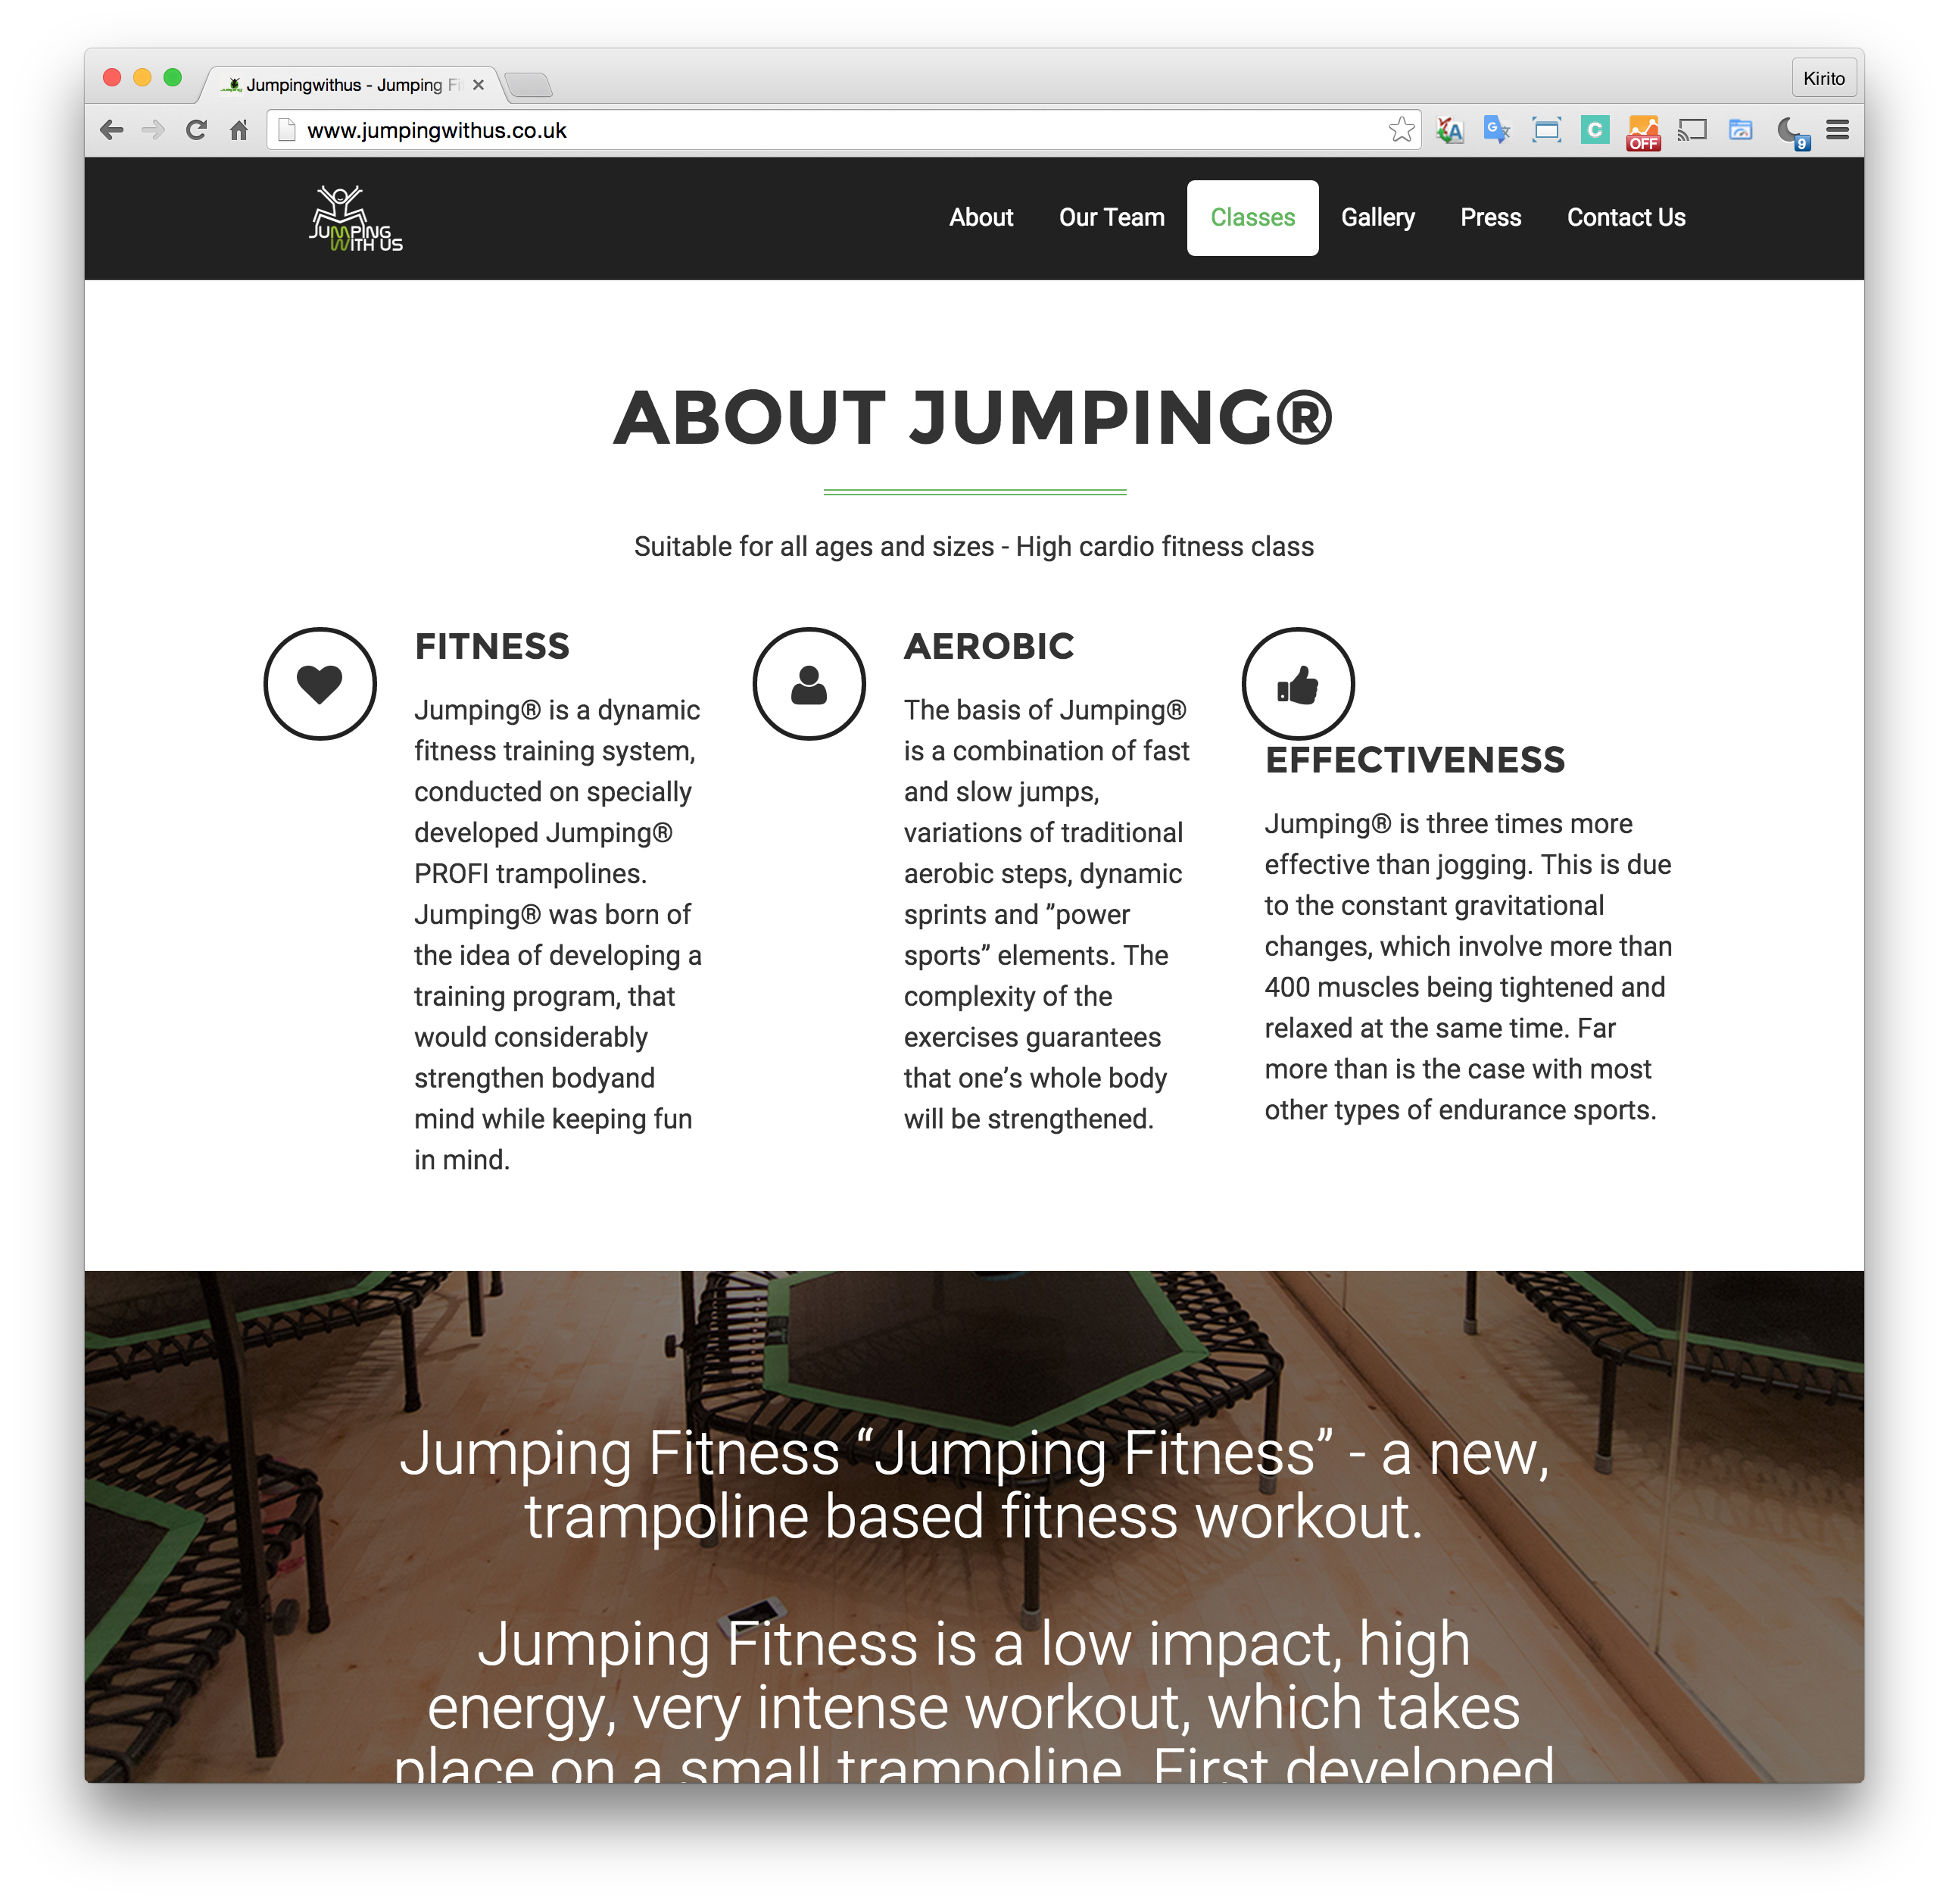 About Jumpingwithus